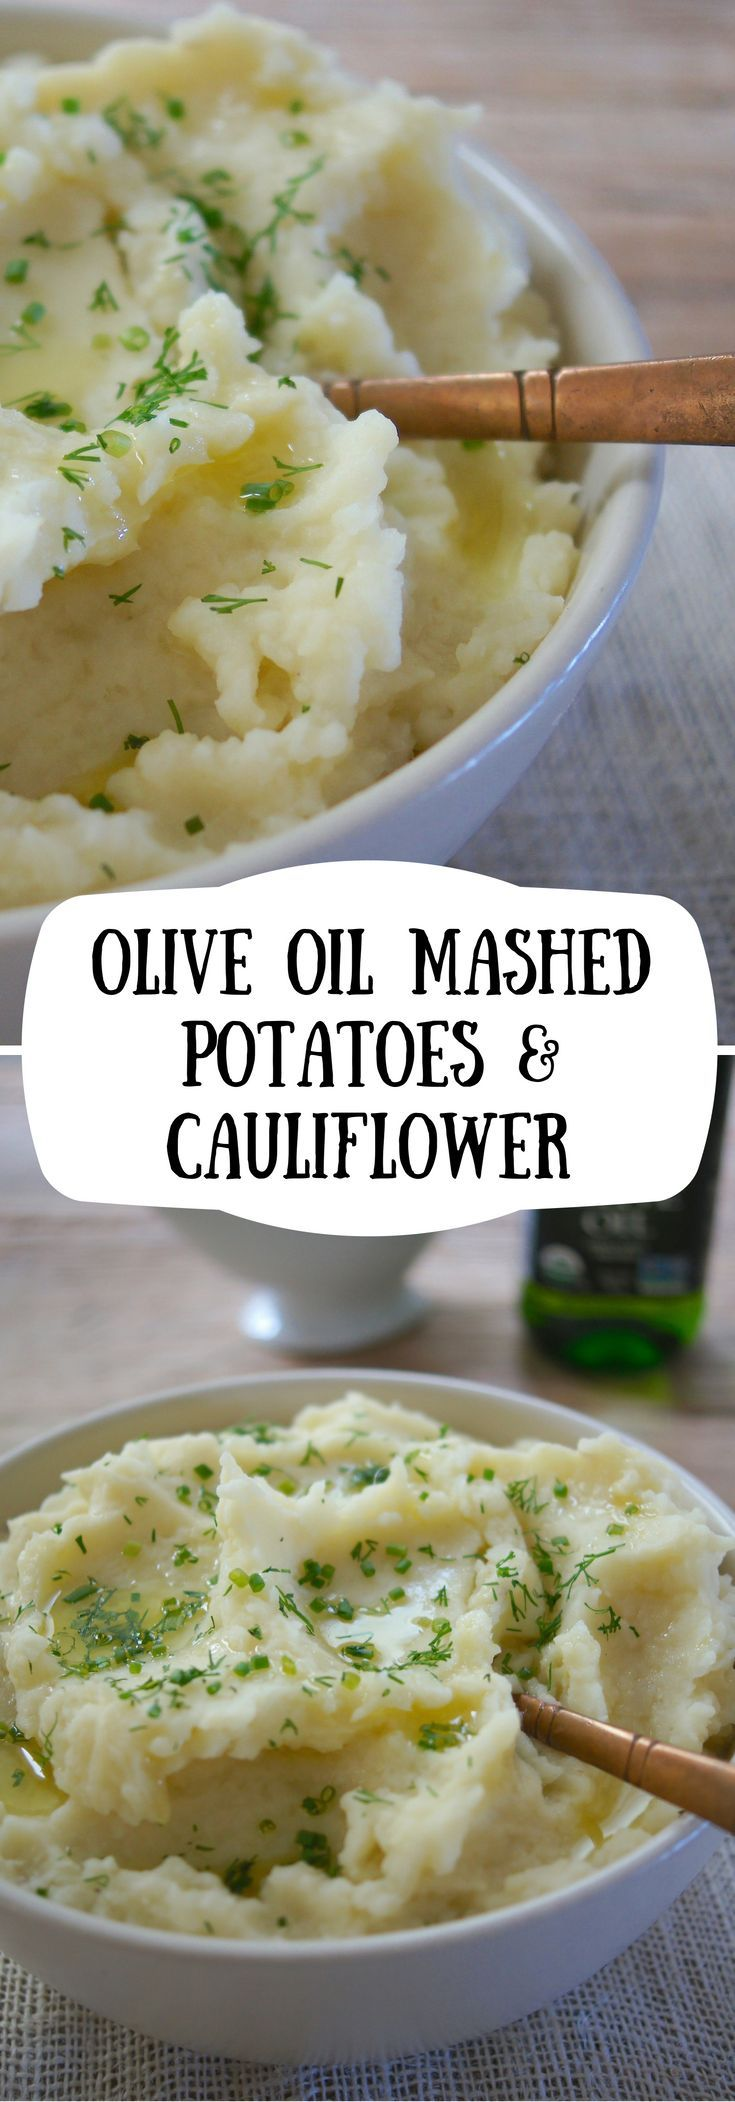 Creamy Olive Oil Mashed Potatoes & Cauliflower for your Thanksgiving table. A healthy mashed potato, great for guests who are dairy-free, vegan, and watching their cholesterol.